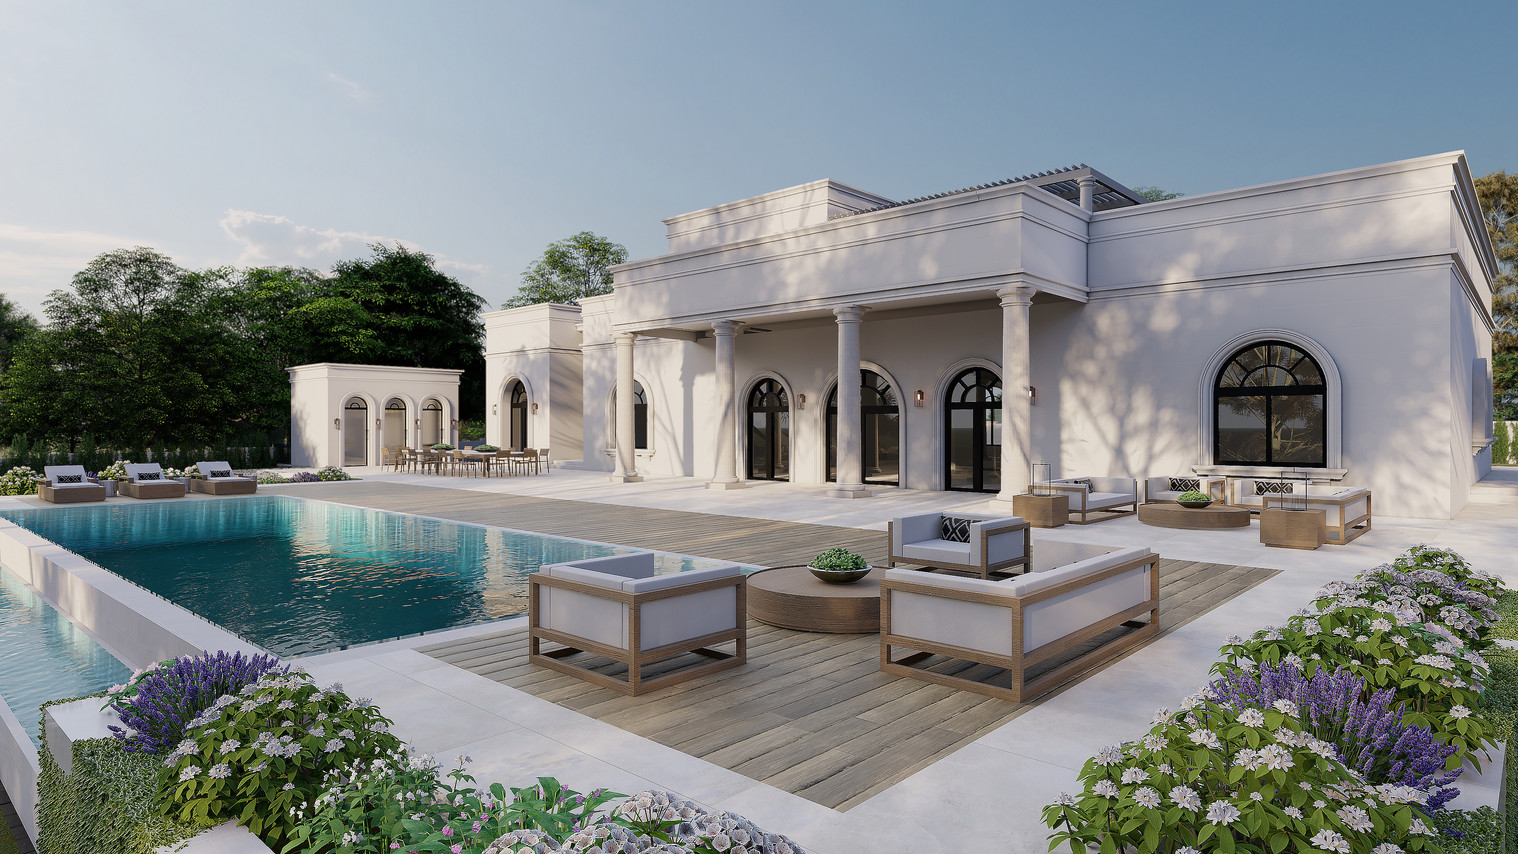 Khoury Residence - Outdoor Deck Option A